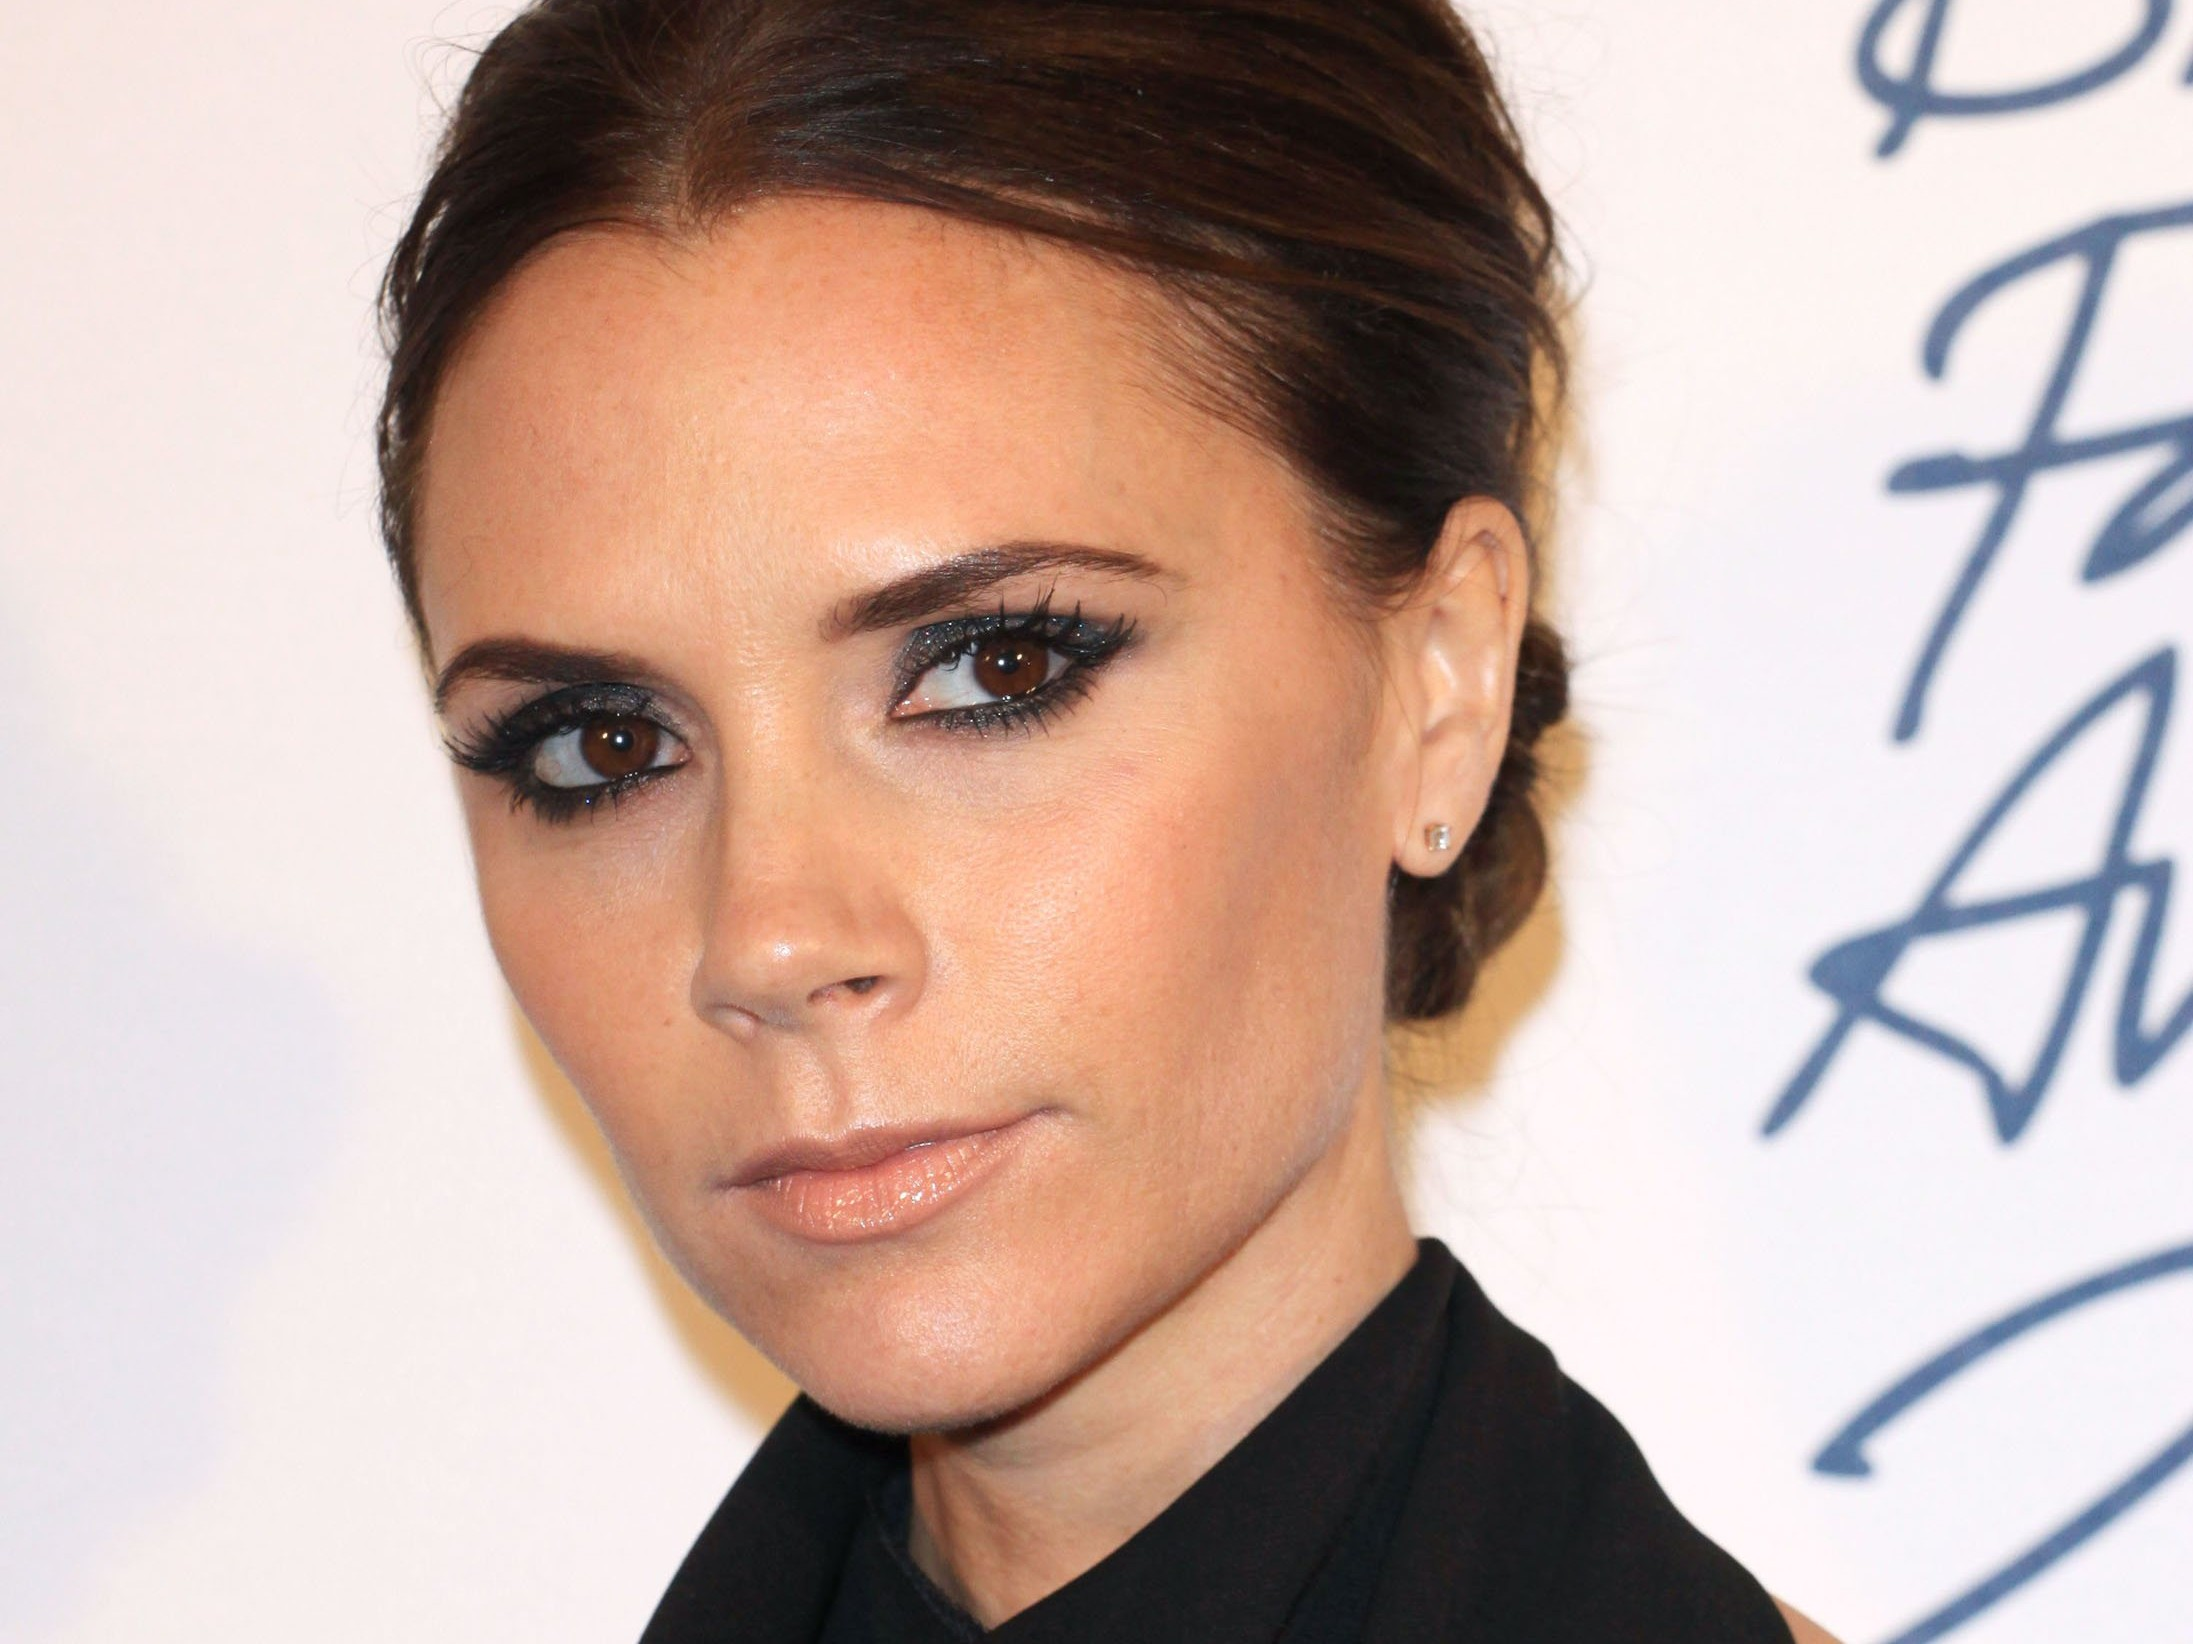 """Posh Spice just gave the perfect definition of """"Girl Power"""""""